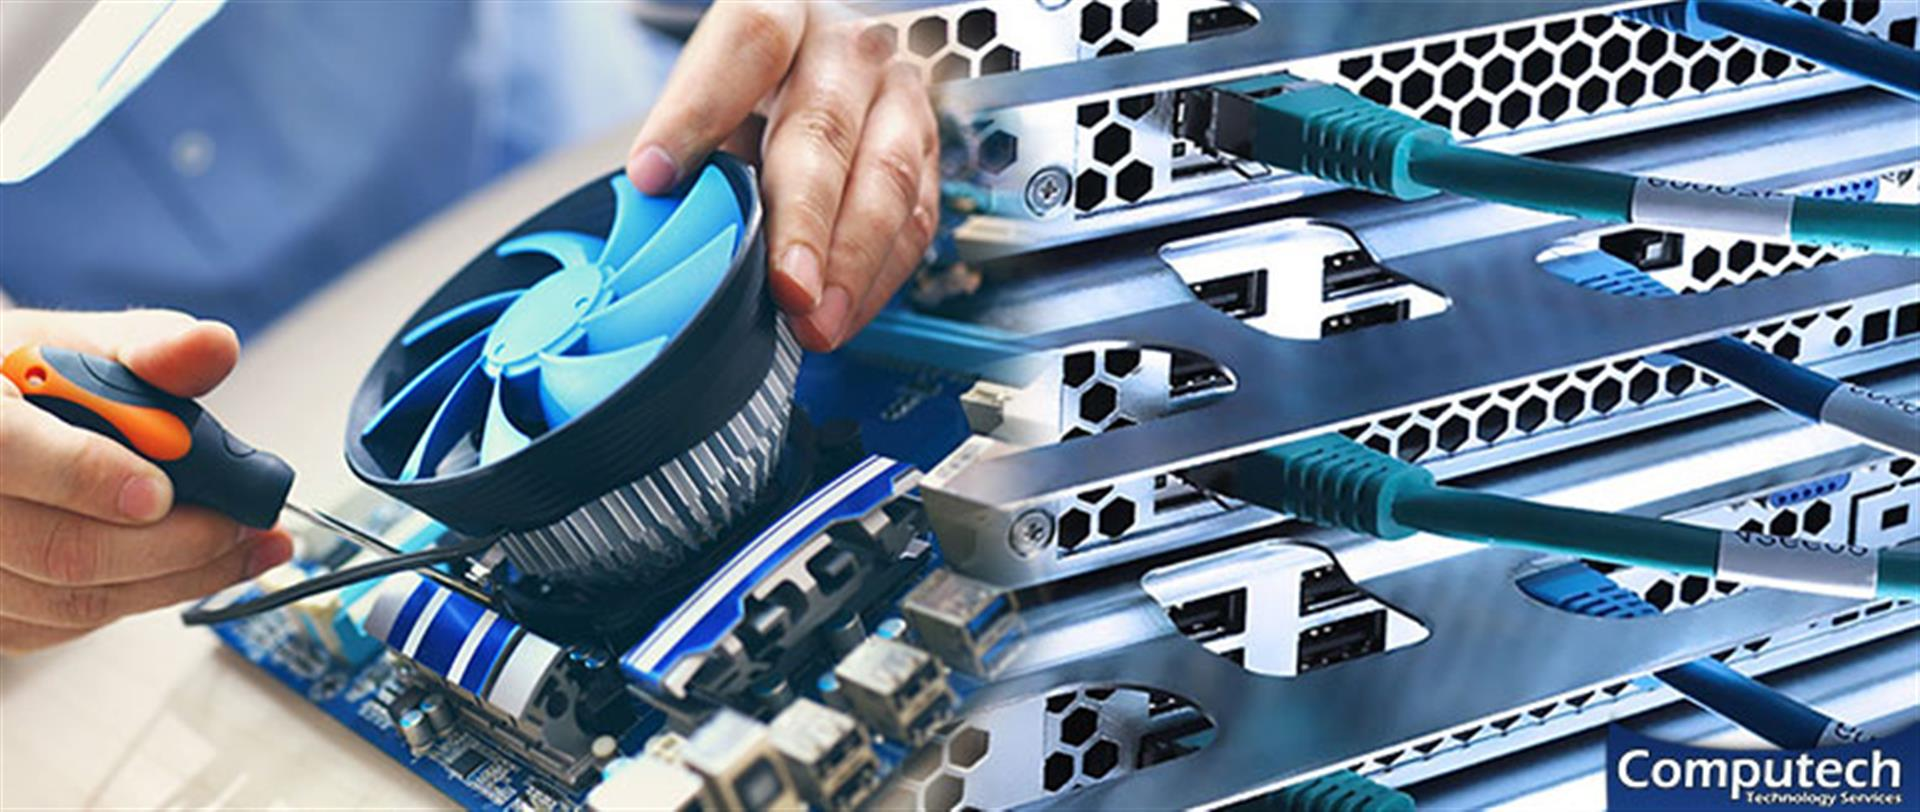 Cottonwood Arizona Onsite Computer PC & Printer Repairs, Network, Voice and Data Cabling Solutions